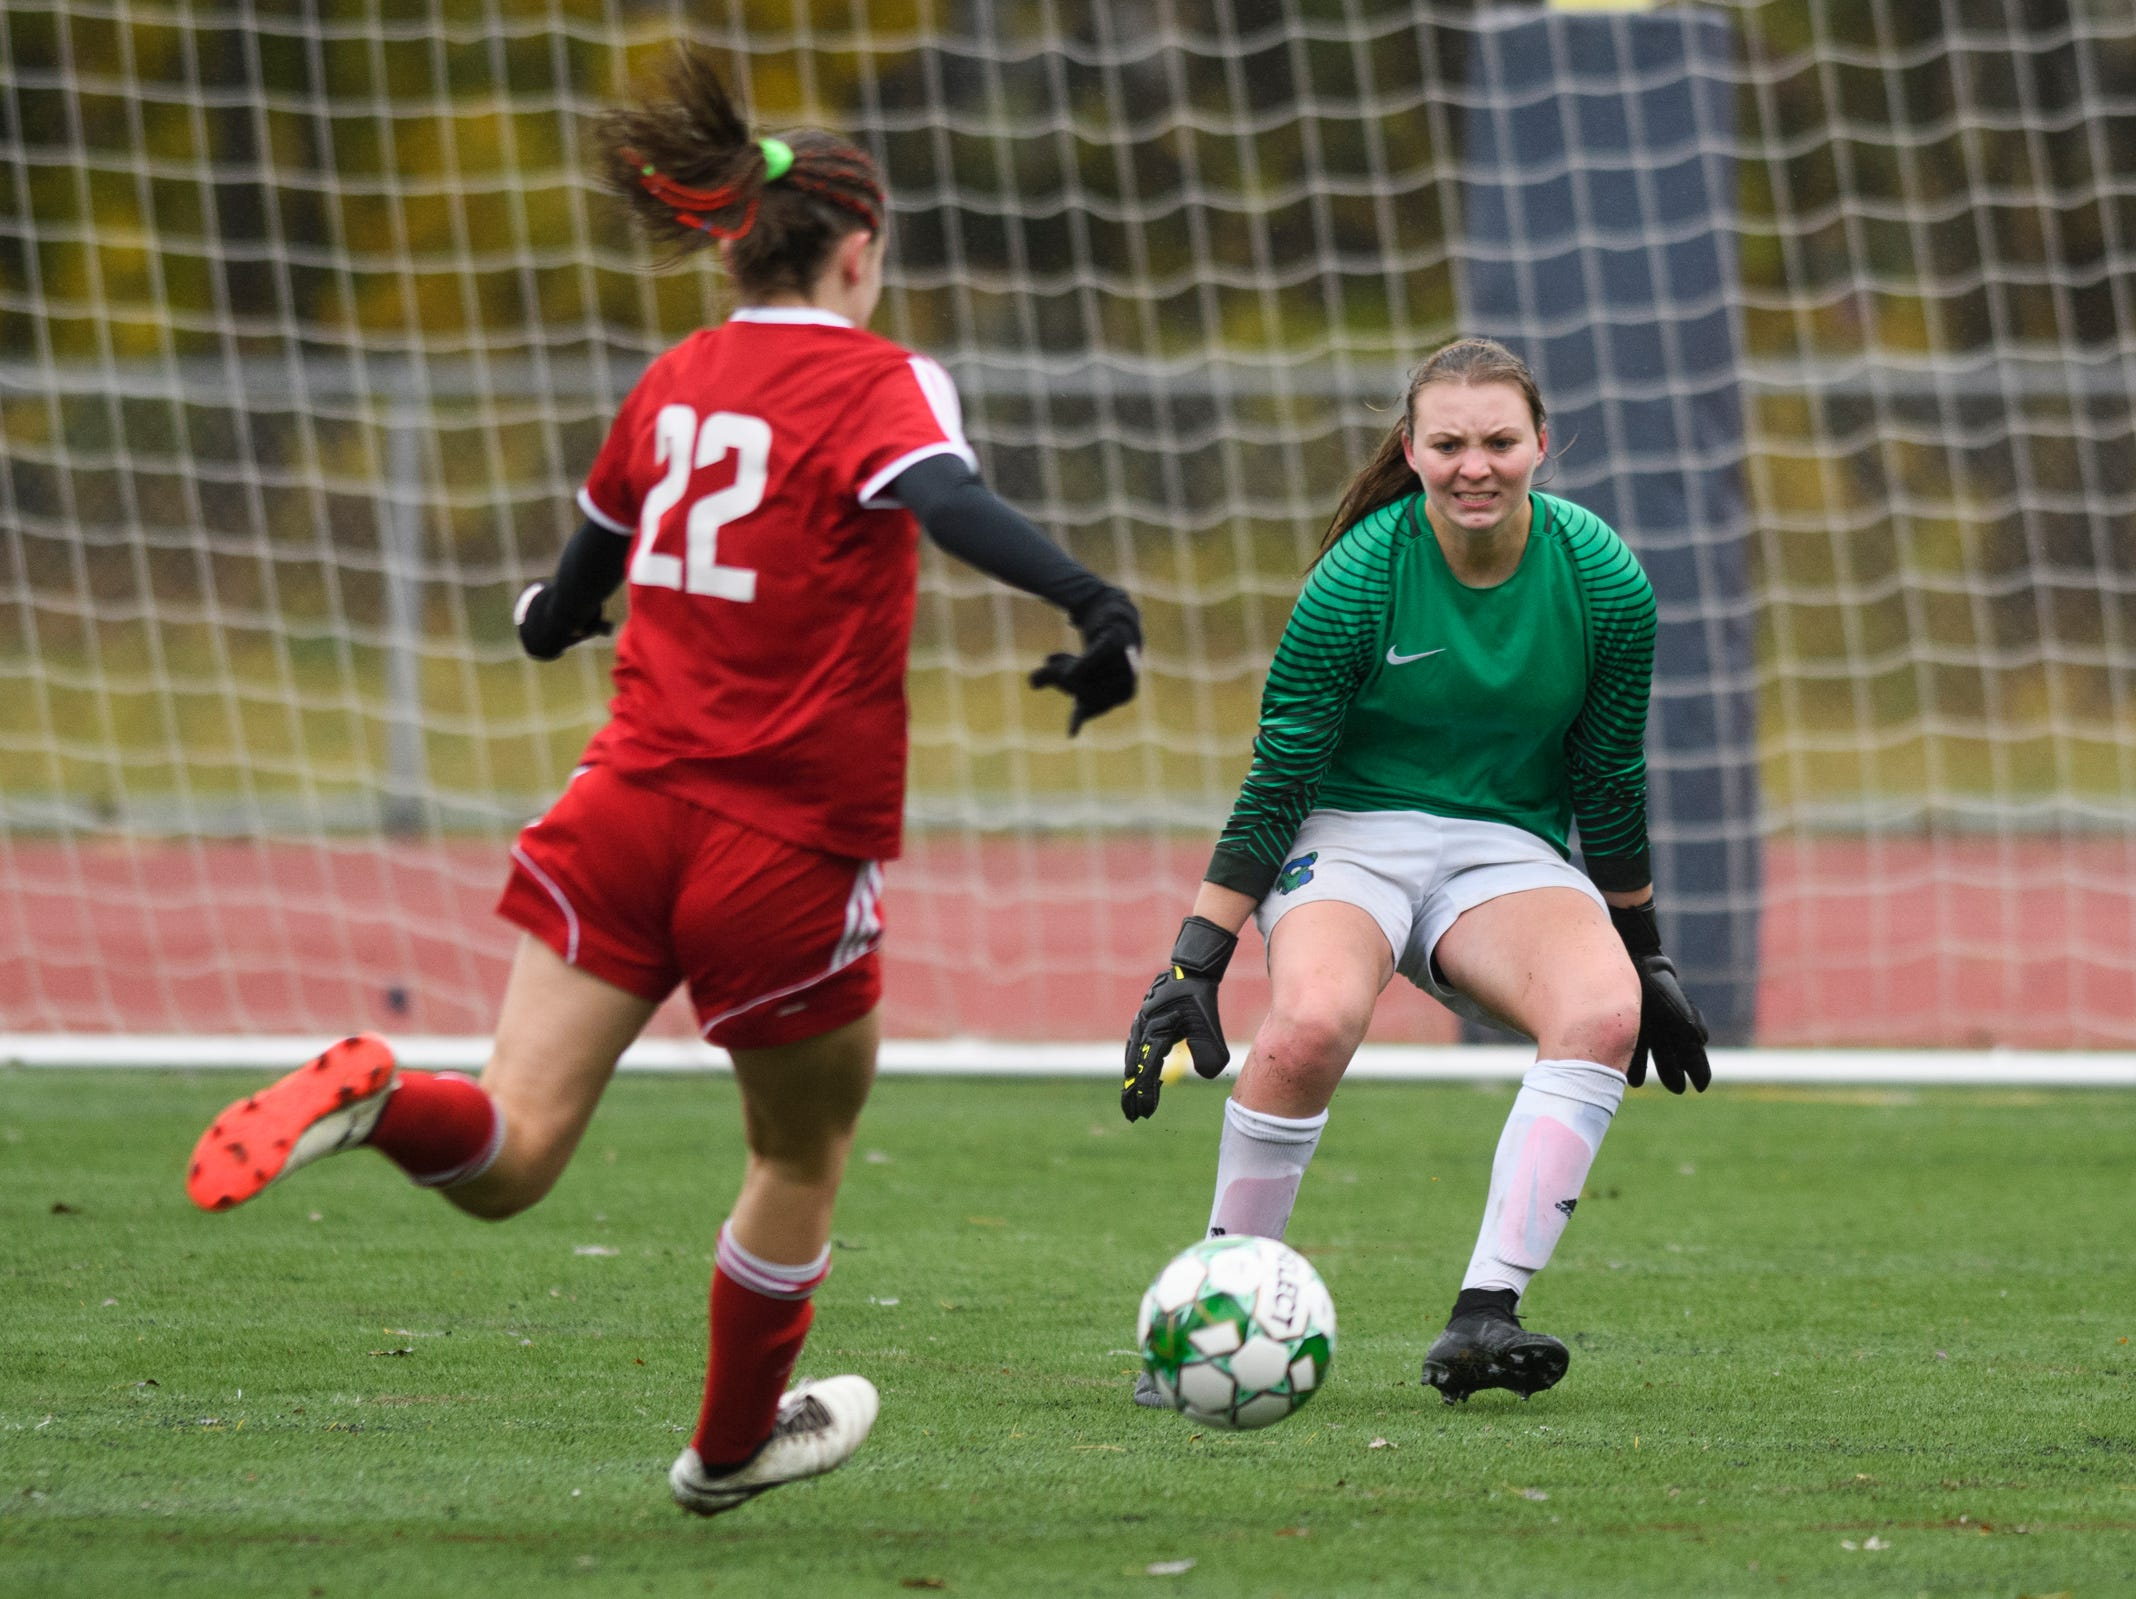 Colchester goalie Olivia Moore looks to make a save on a shot by CVU's Josie Pecor (22) during the division I girls soccer championship game between the Colchester Lakers and the Champlain Valley Union Redhawks at Buck Hard Field on Saturday morning November 3, 2018 in Burlington.